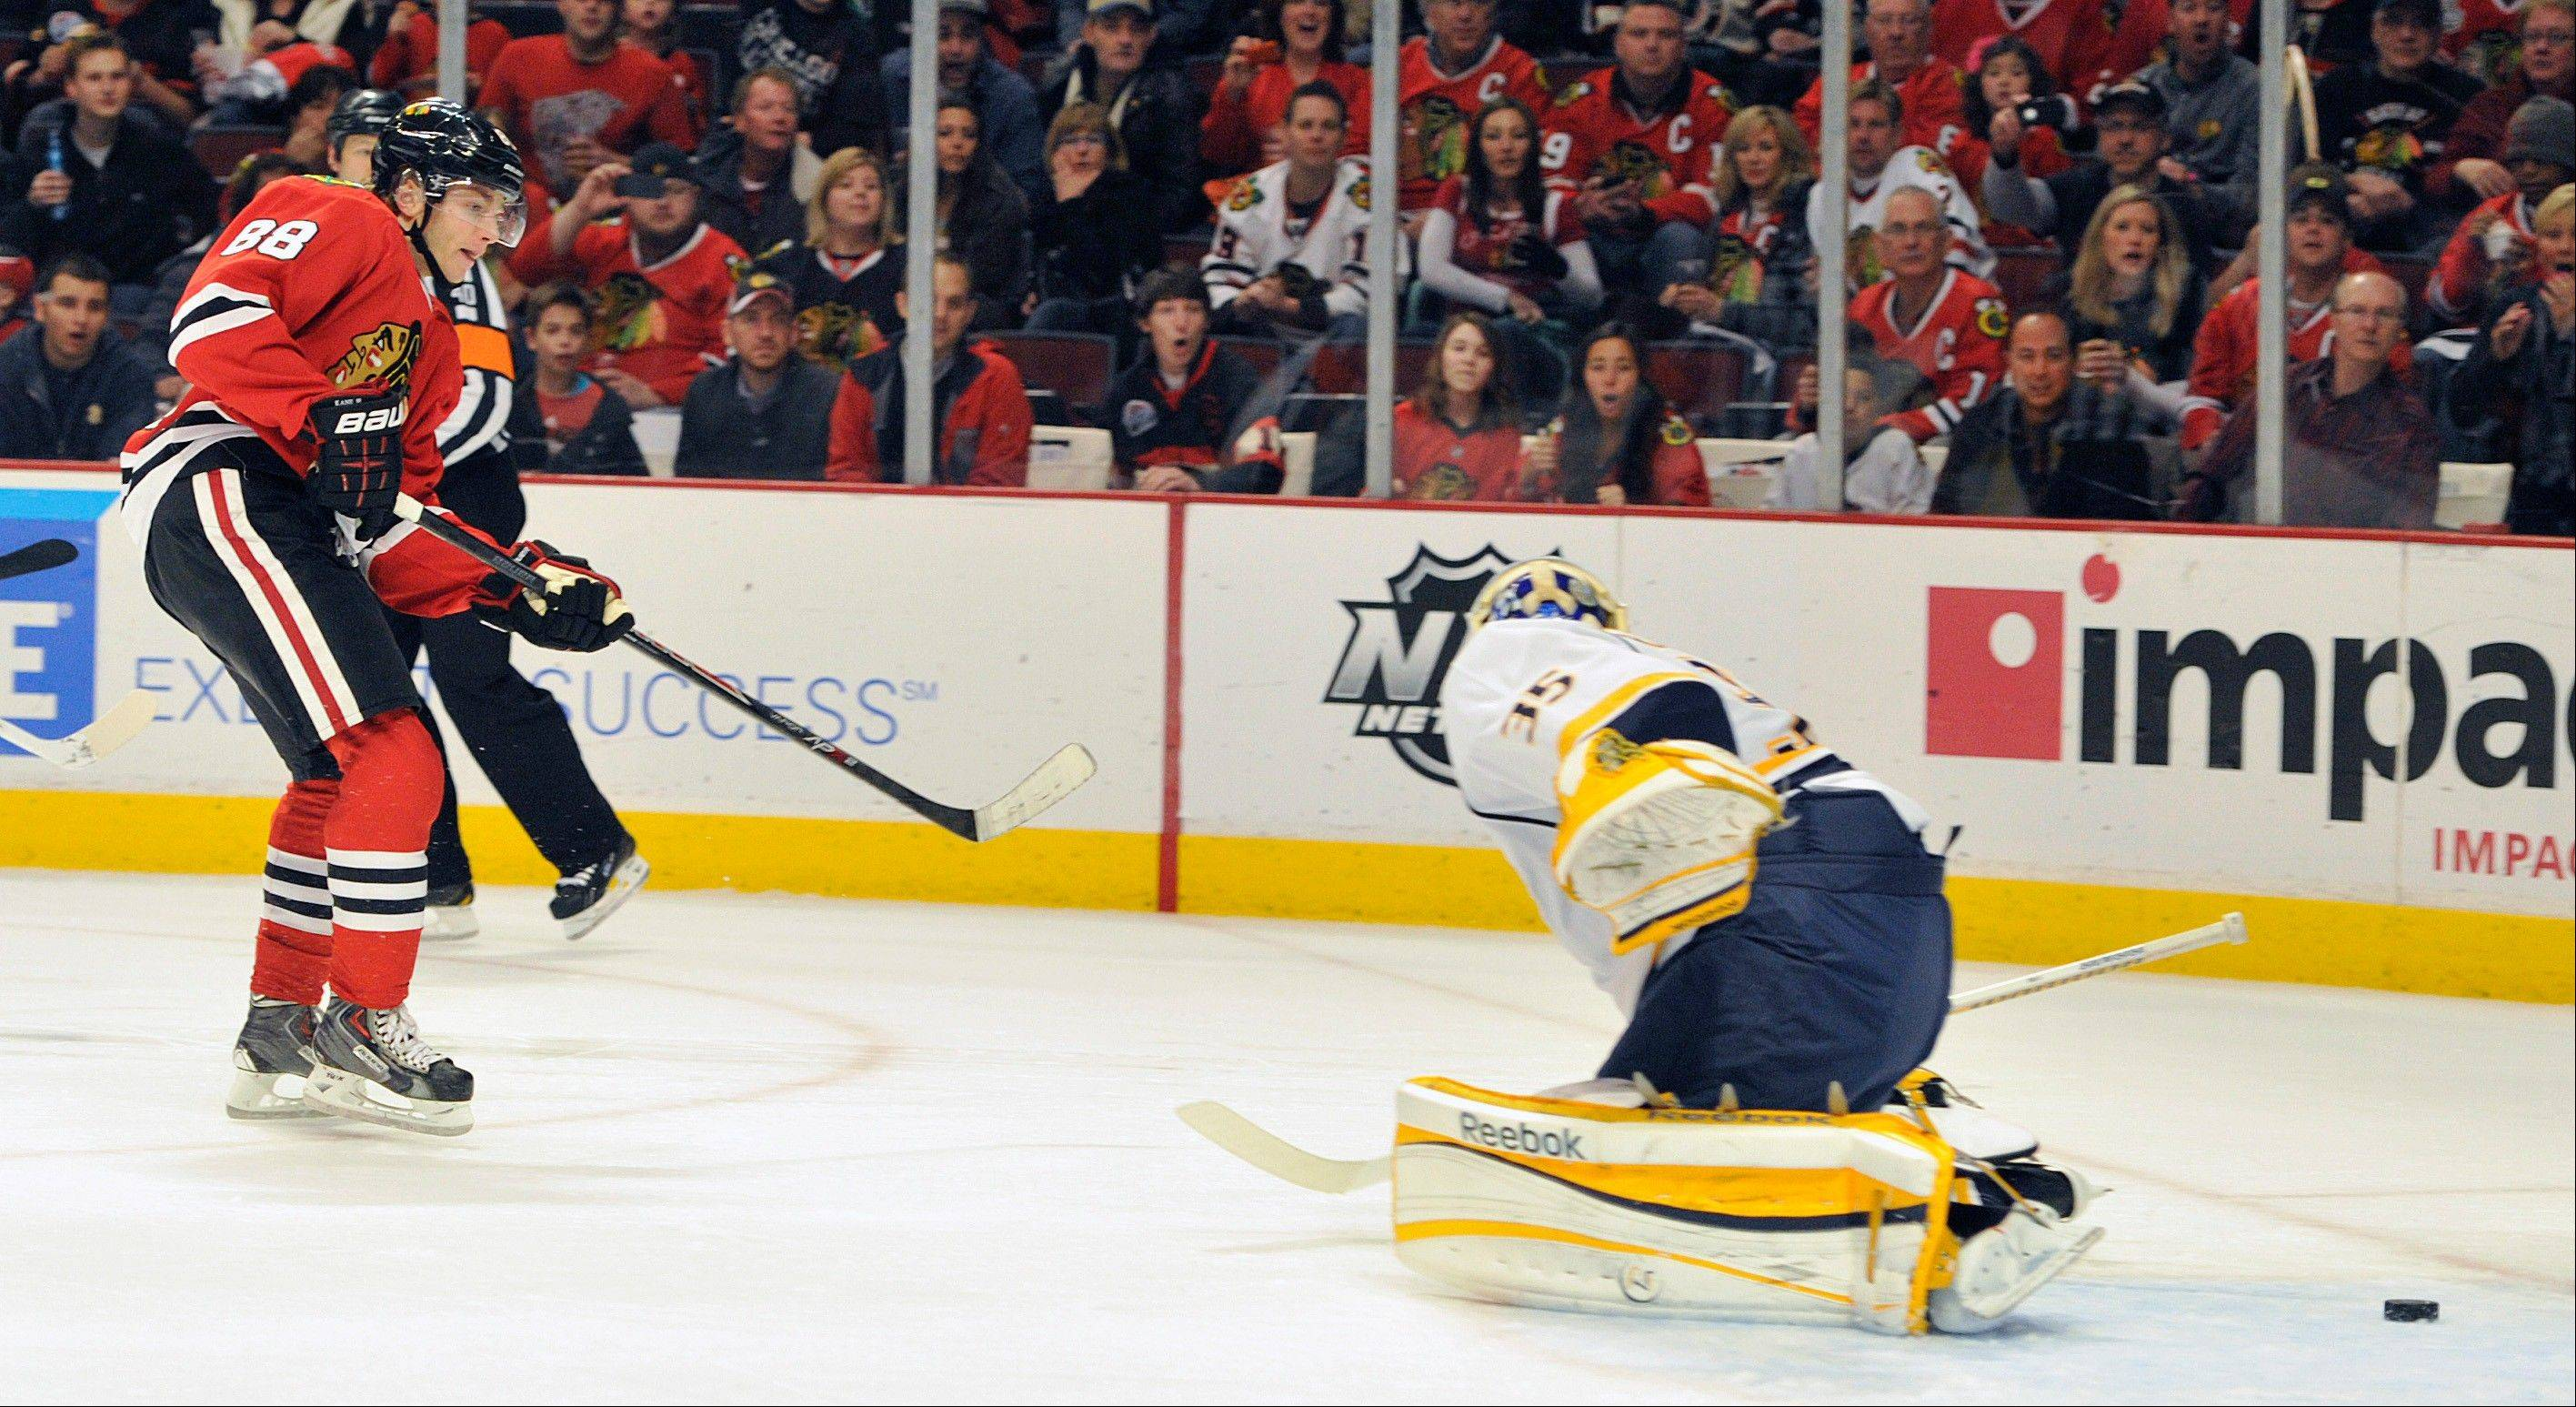 Chicago Blackhawks' Patrick Kane (88) shoots the puck past the Nashville Predators' Pekka Rinne during the second period of an NHL hockey game on Friday, April 19, 2013, in Chicago.